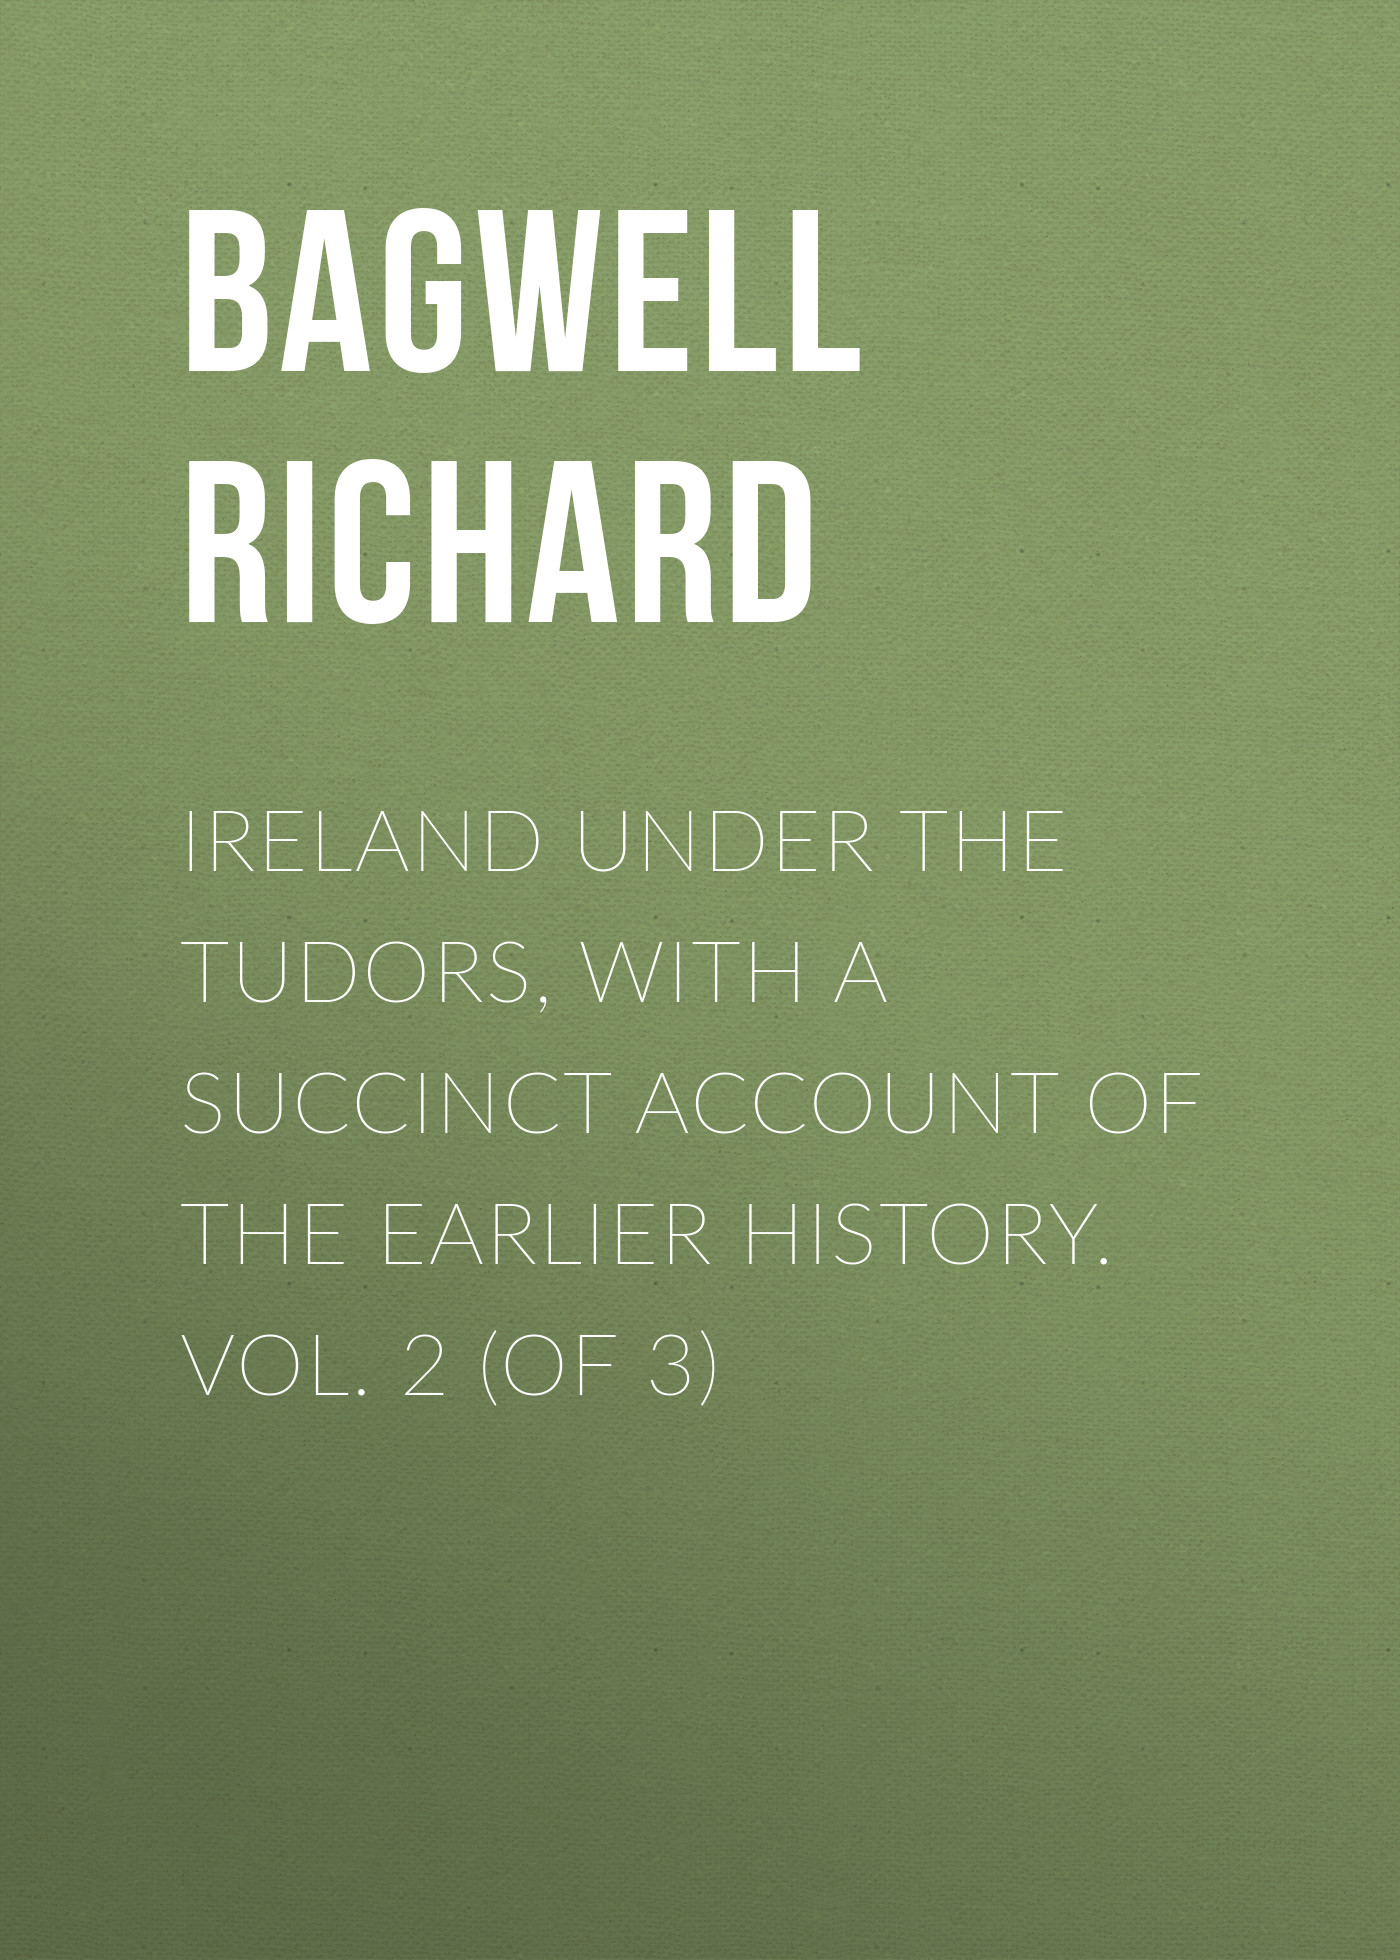 Bagwell Richard Ireland under the Tudors, with a Succinct Account of the Earlier History. Vol. 2 (of 3)